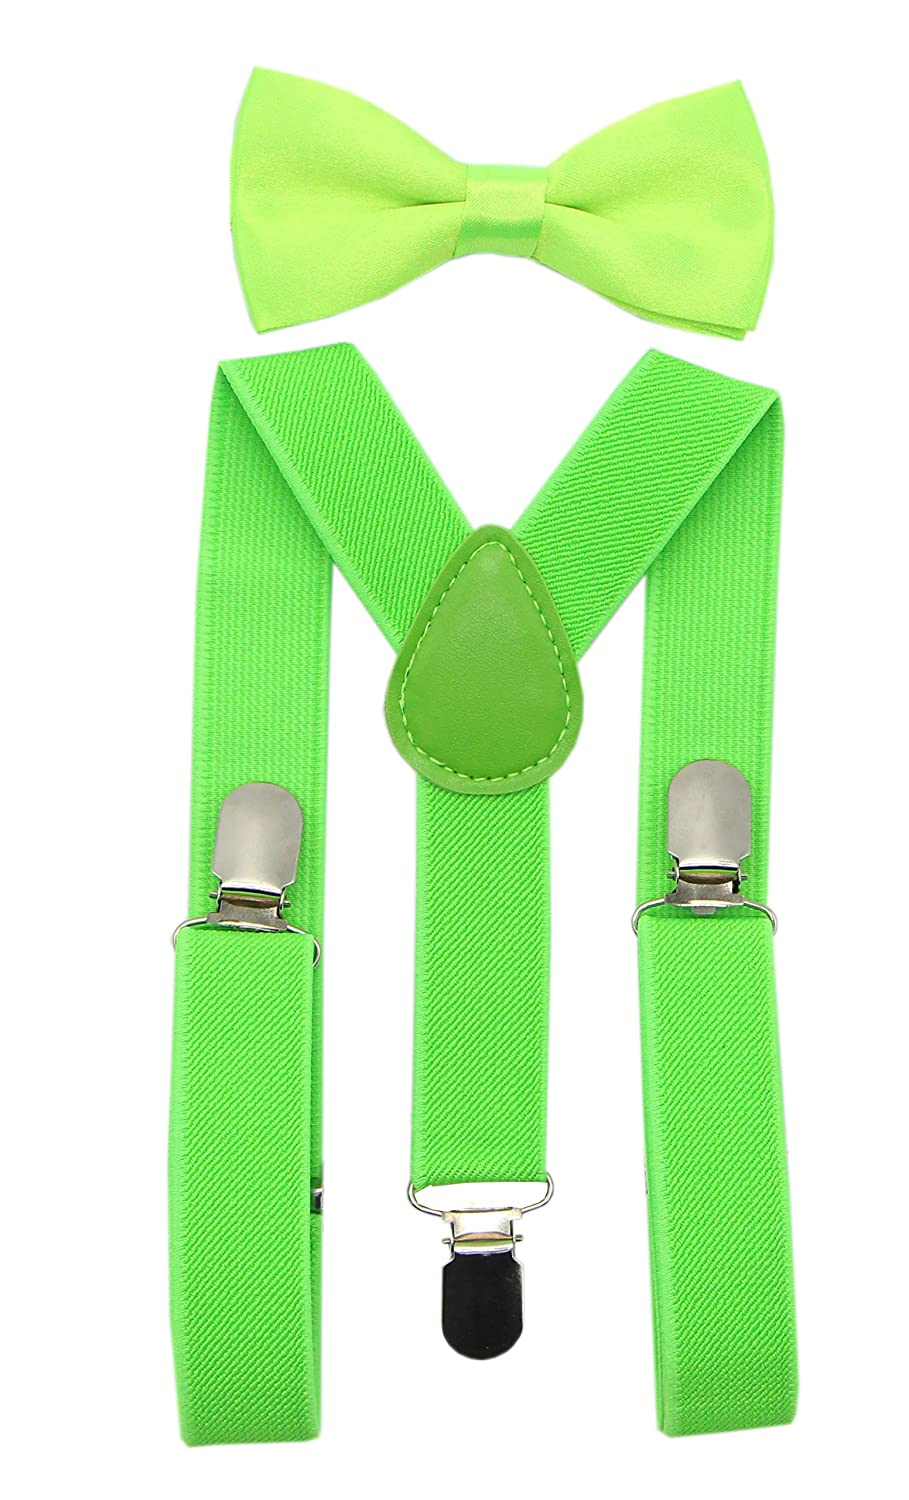 JAIFEI Suspender&Bow Tie Set-Adjustable Strong Clip-on Suspender for Boys&Girls (Kelly) Boys Suspender 2 Set Kelly CA